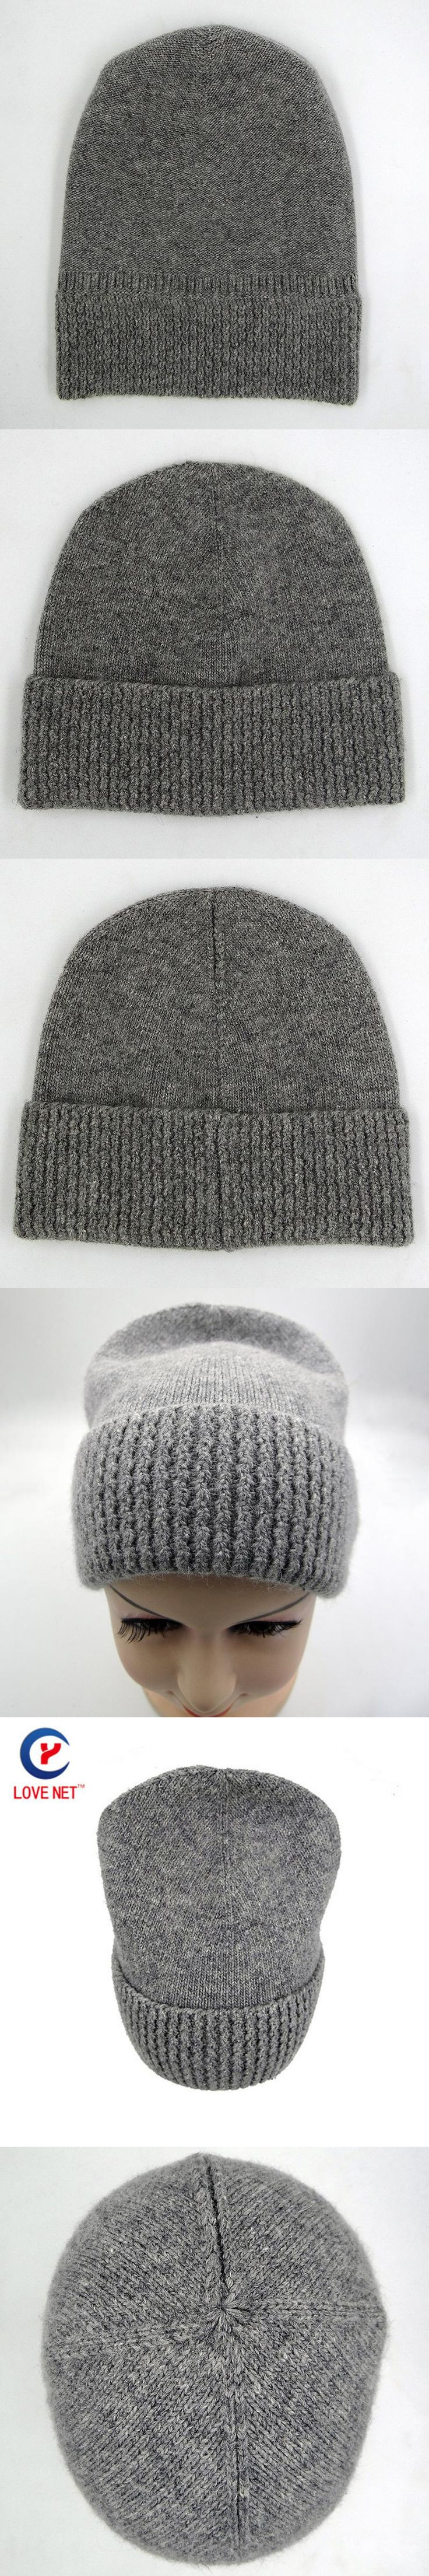 2017 New arrival high quality wool grey beanie hat for women Warm simple style Knitting winter wooly hats online DS20170123 x24